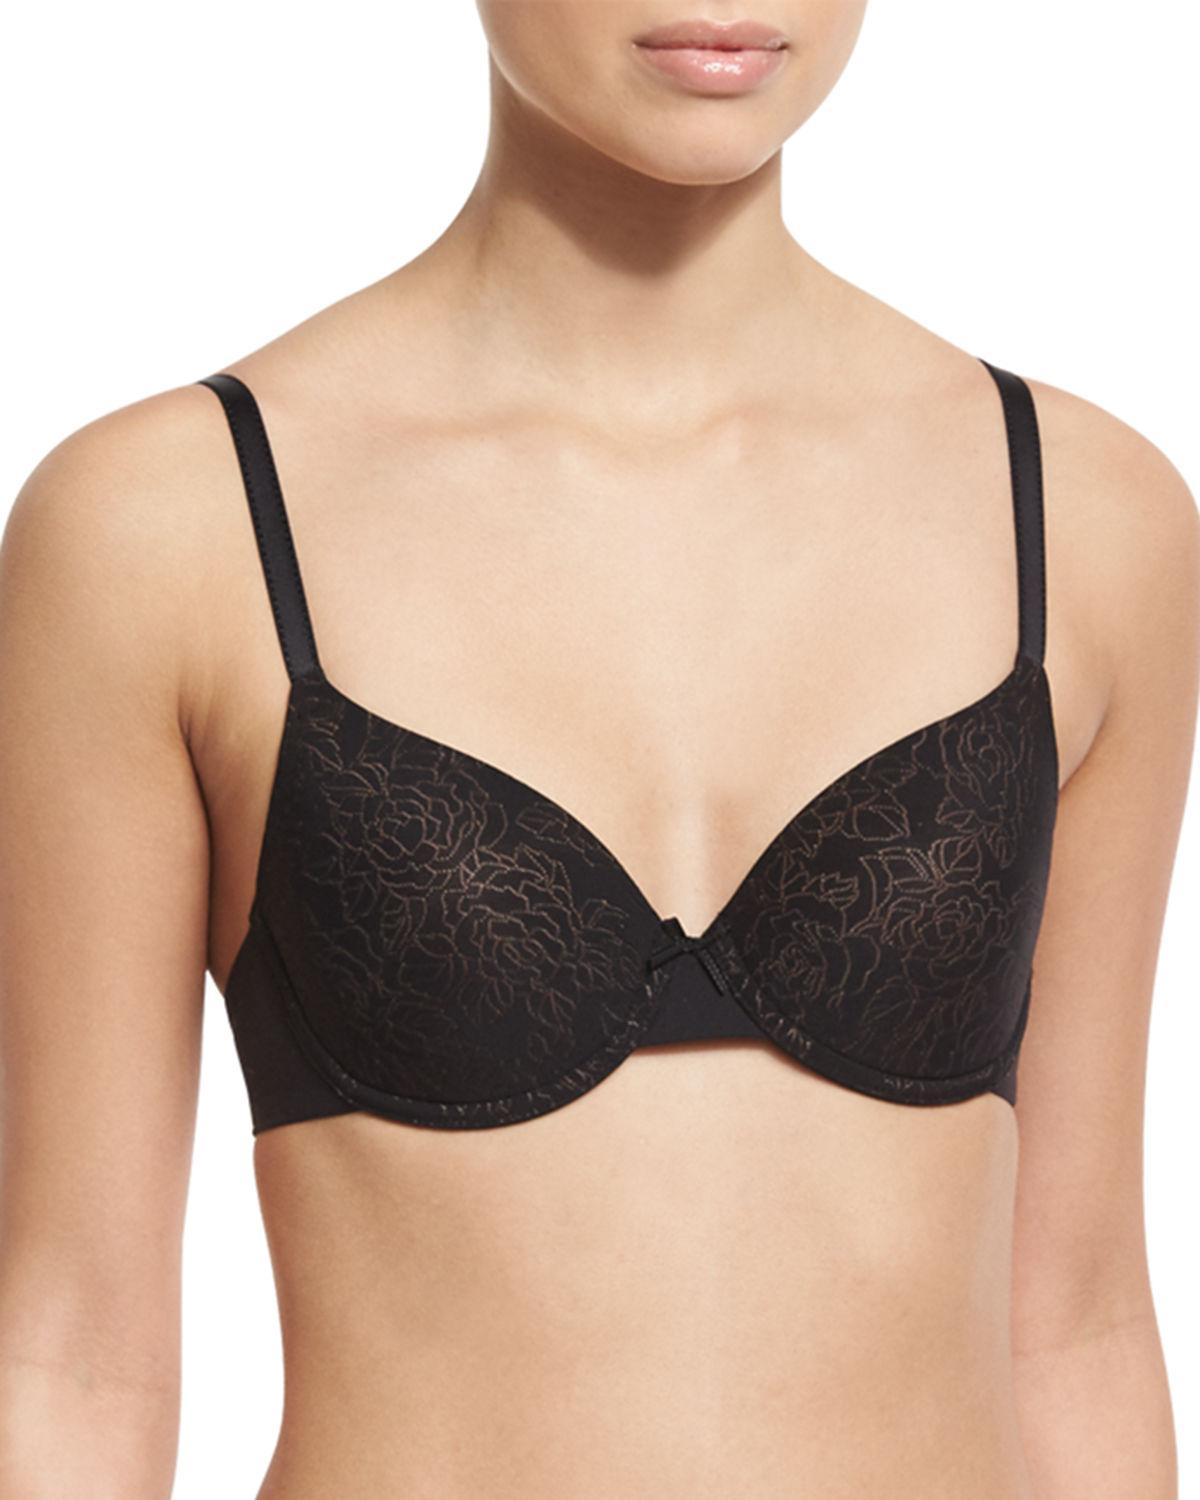 Chantelle velvet touch memory t shirt bra in black lyst for Chantelle mademoiselle memory foam t shirt bra